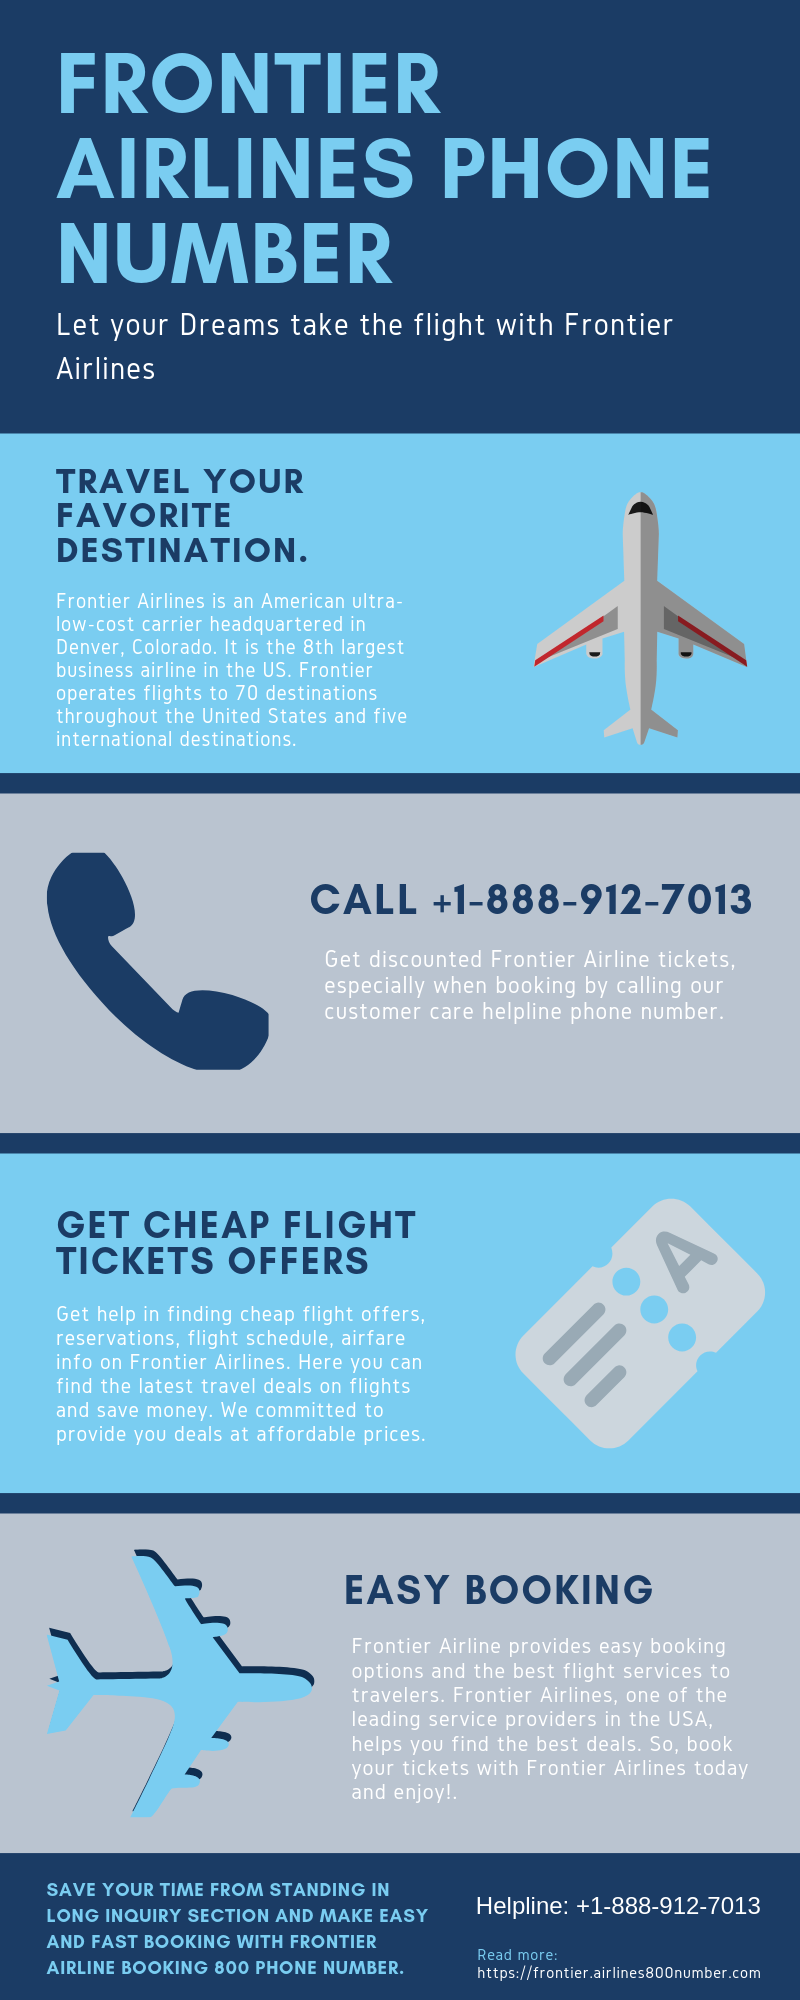 how far in advance can you book a flight on frontier